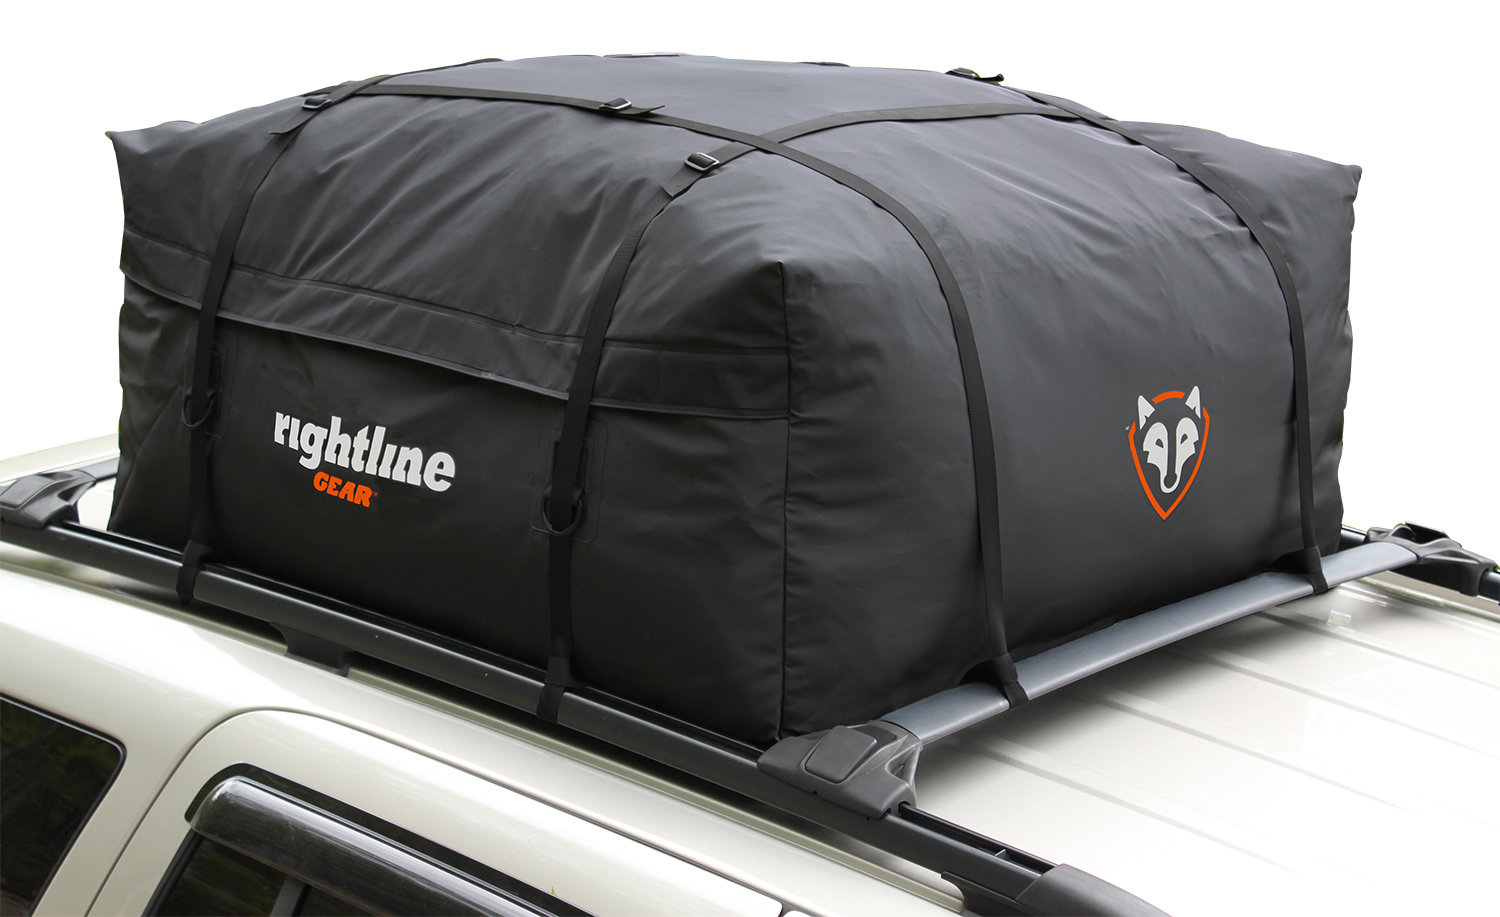 Car Roof Racks >> Rightline Gear Edge Car Top Carrier - Free Shipping & Price Matching